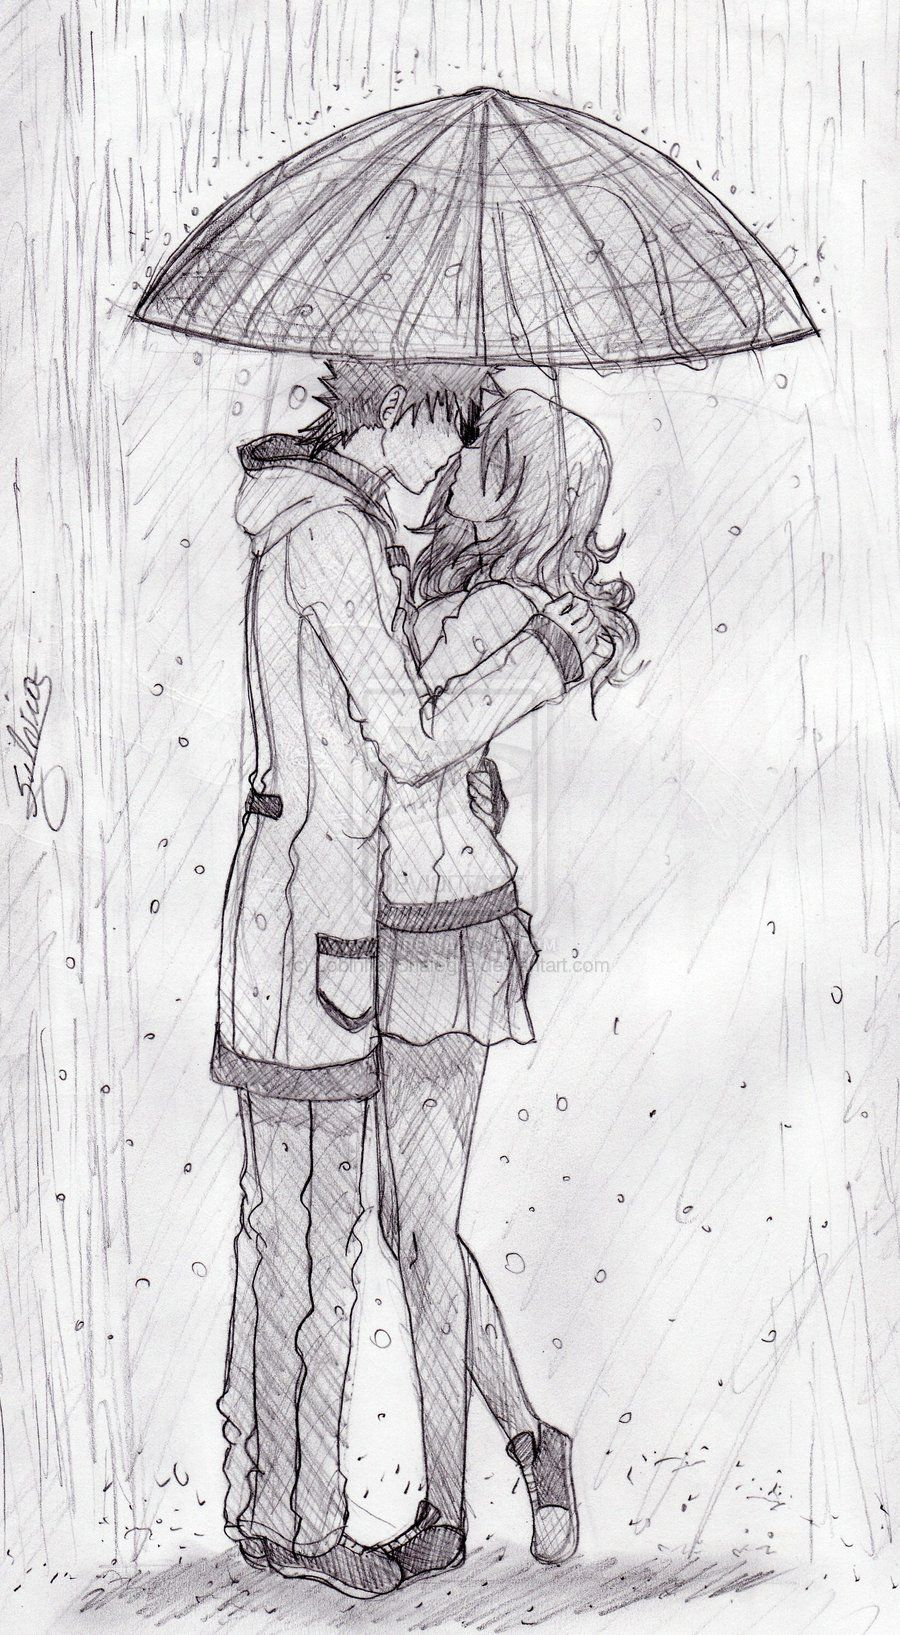 Kiss in the rain drawing